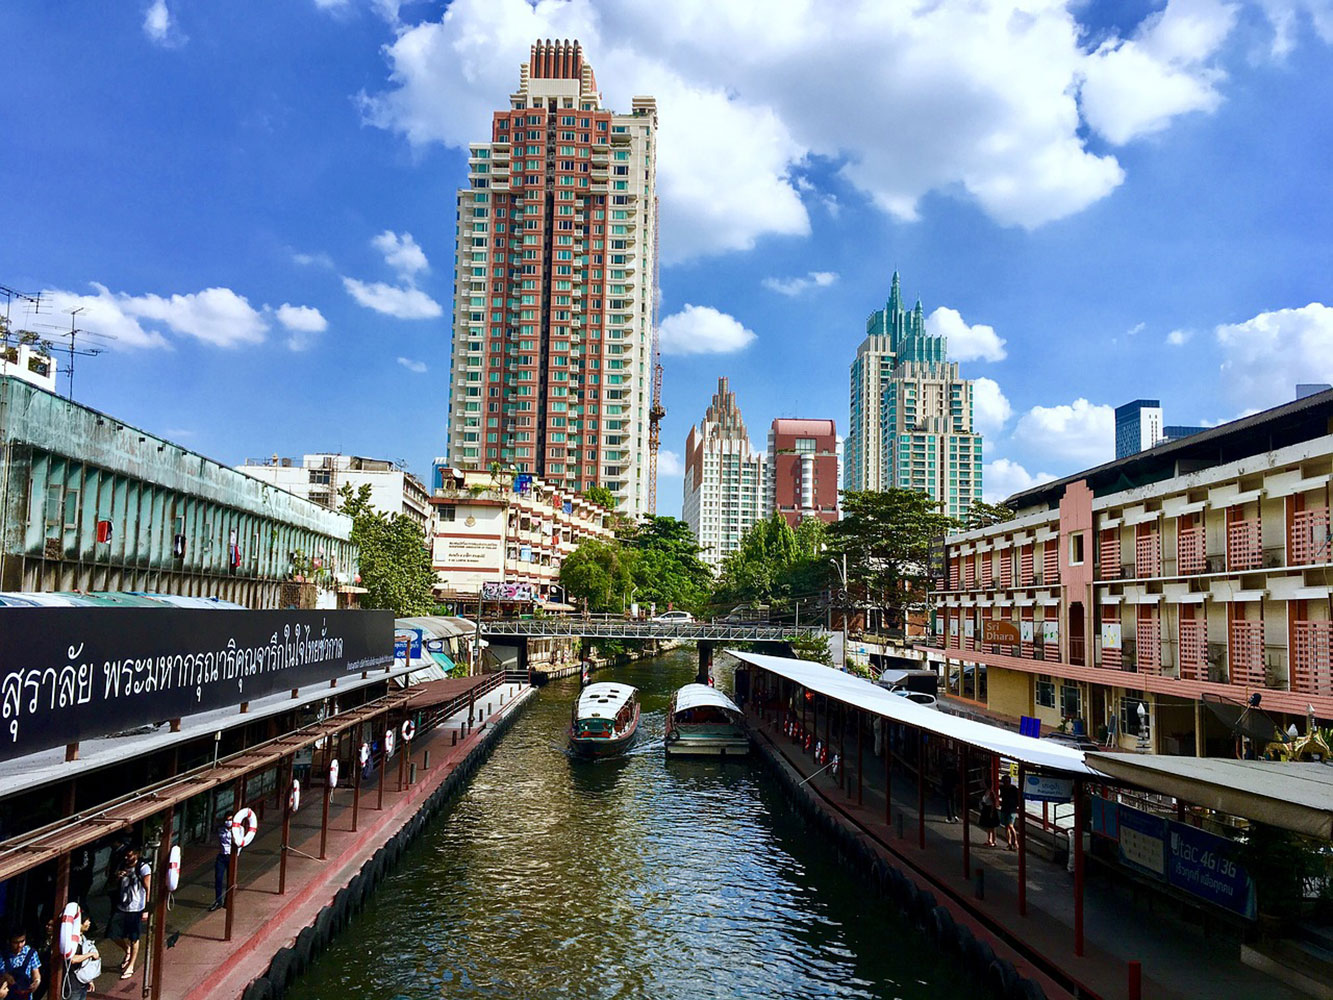 Urban canal filming location in Bangkok Thailand